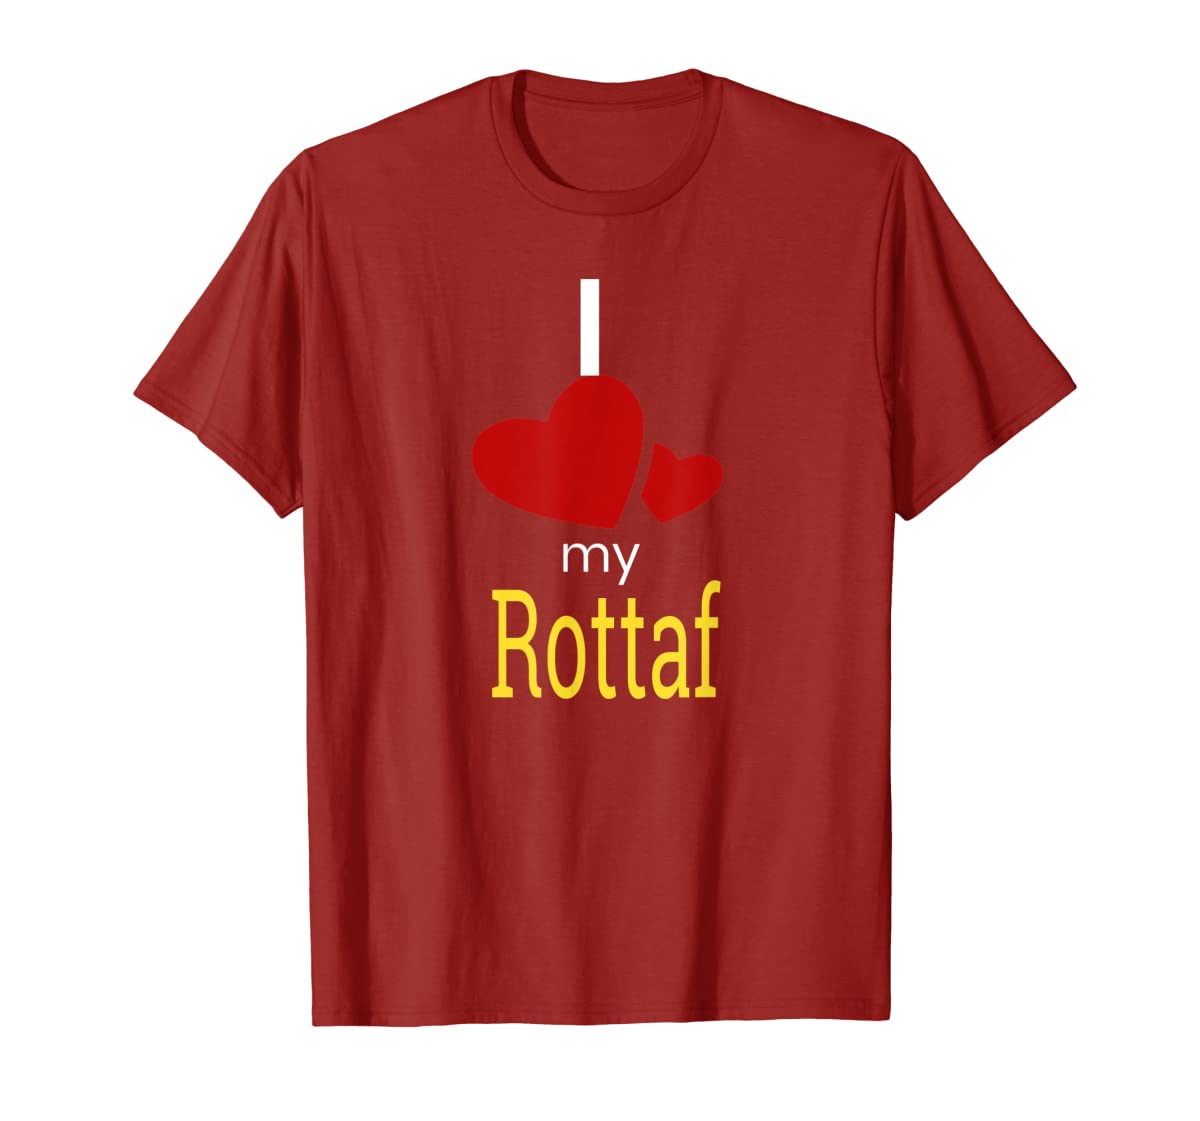 Rottaf Dog Shirt Love Rottweiler + Afghan Hound =  T-Shirt-Men's T-Shirt-Red